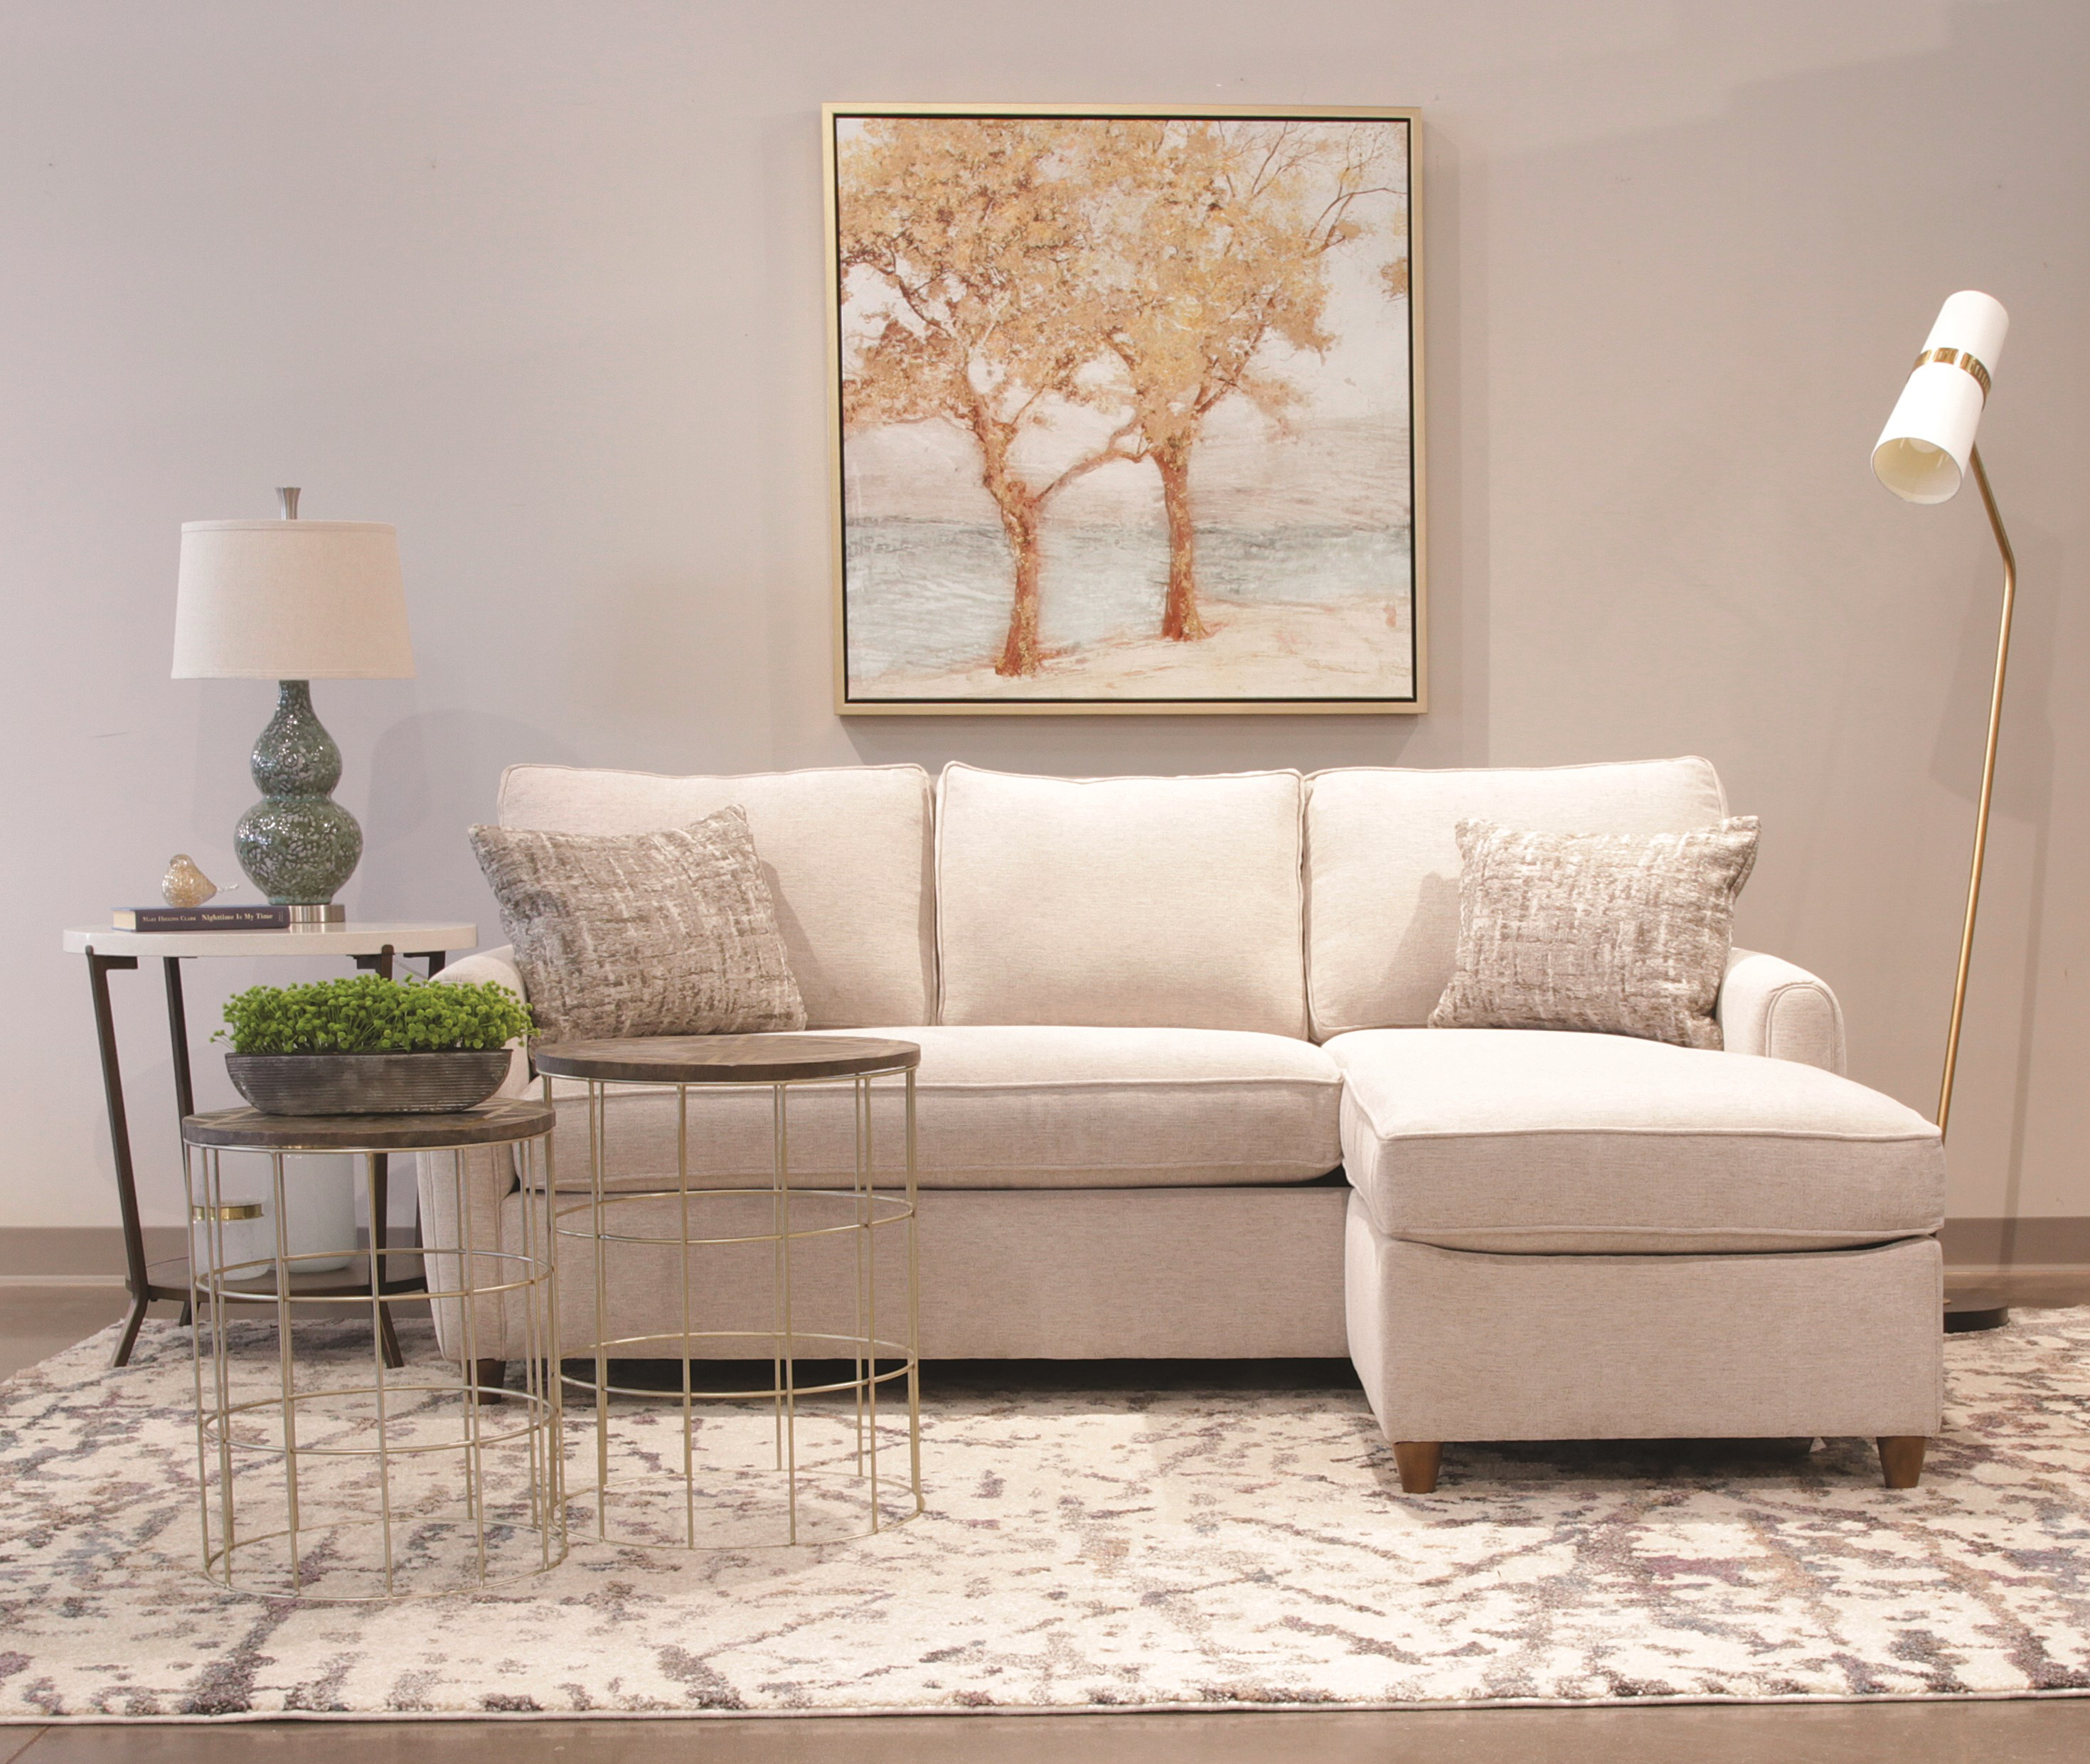 Home Furniture Outlet Store: Hawaii, Oahu, Hilo, Kona, Maui